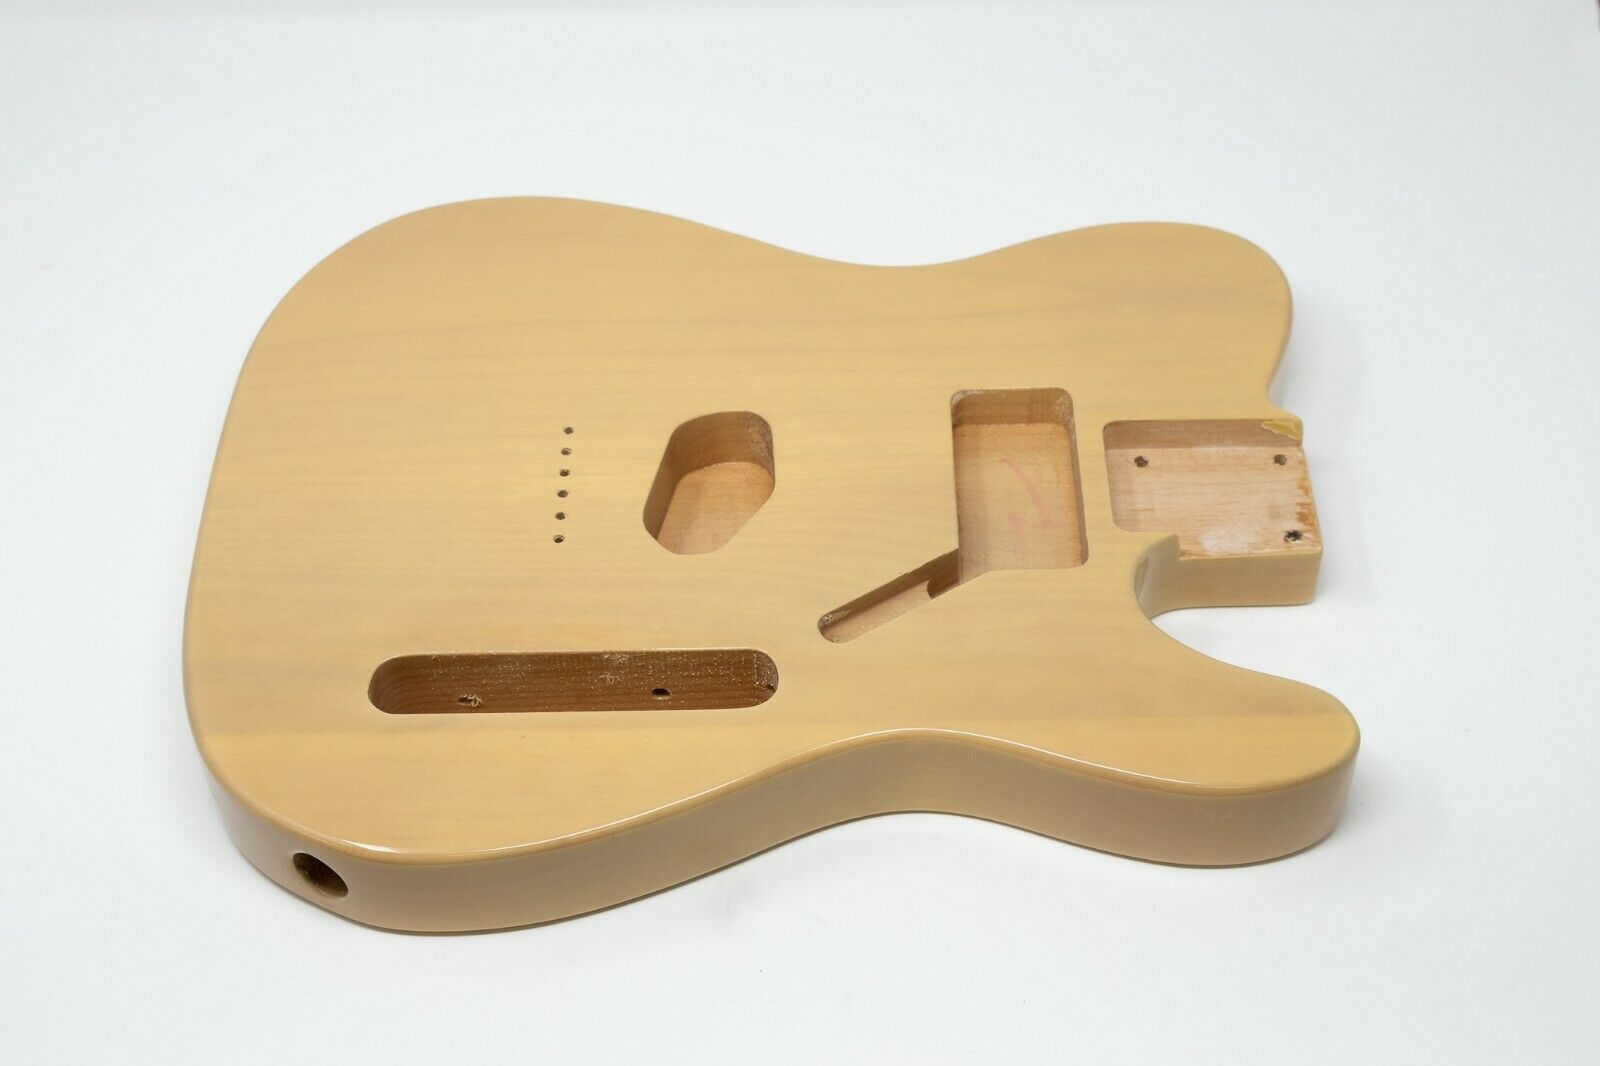 Eden® Standard Series DIY Alder Tele Guitar Body HS Butterscotch Blonde